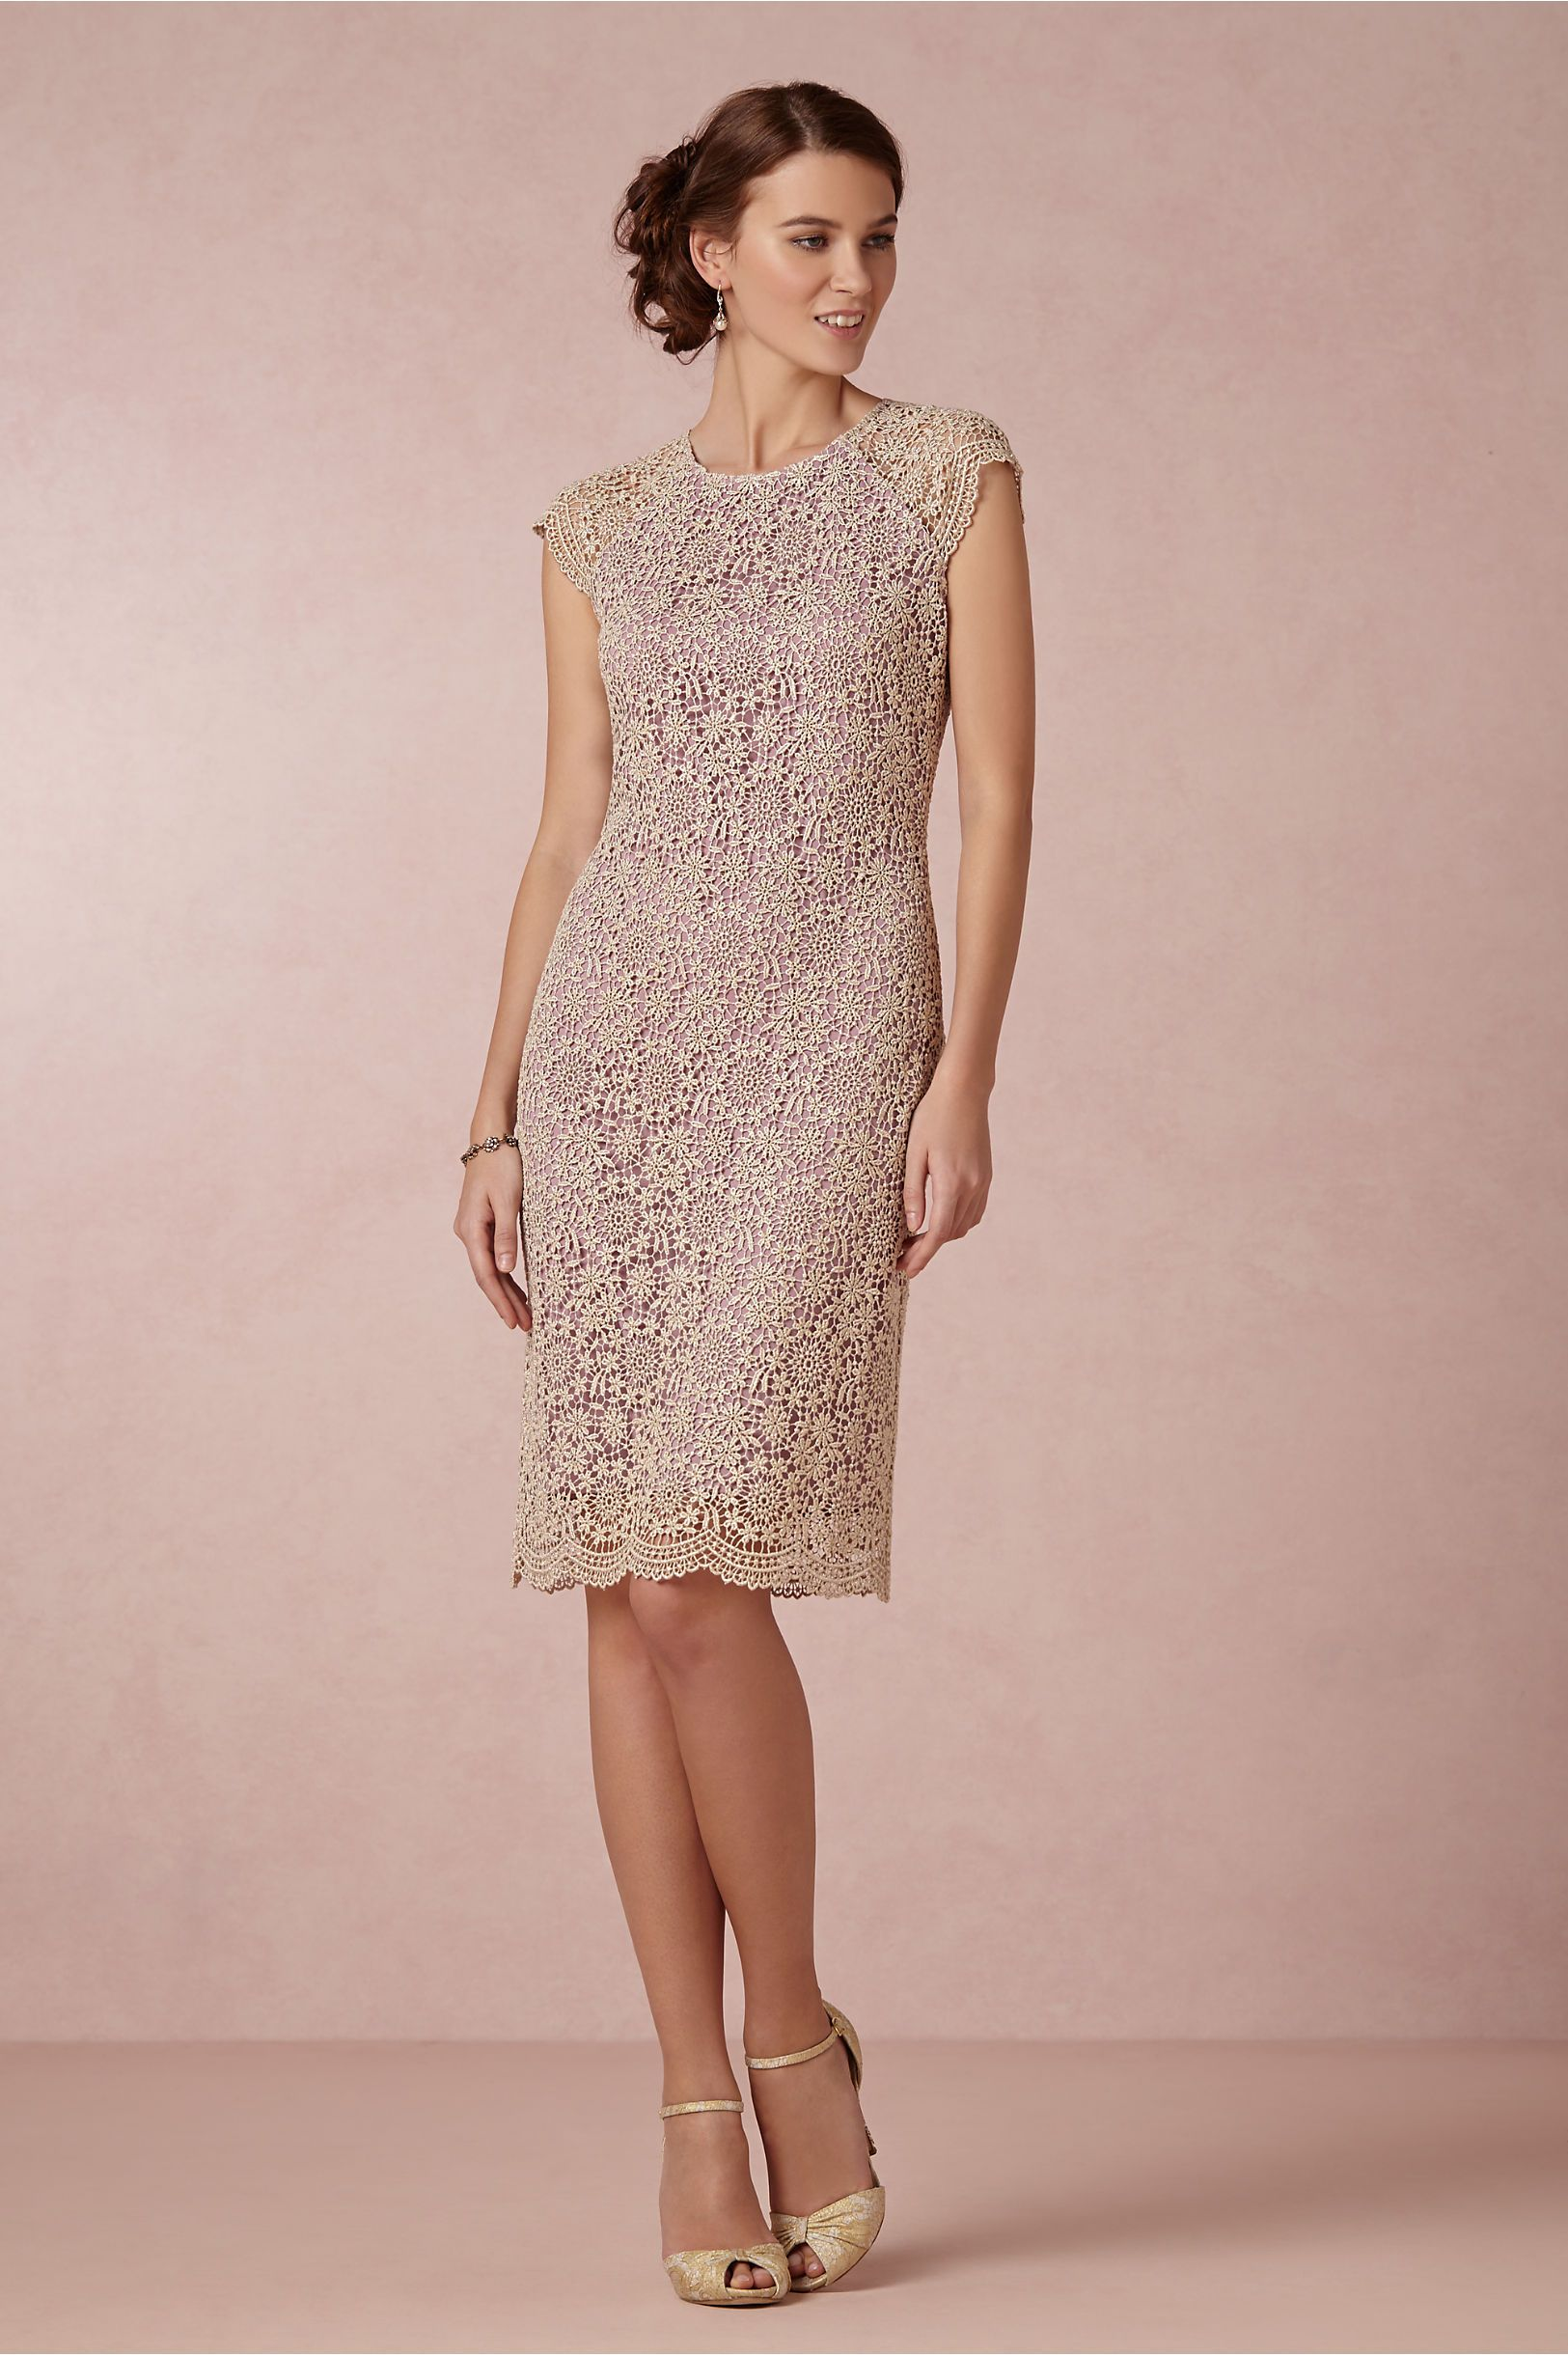 Shined Lace Shift in Bridal Party & Guests Bridesmaids Dresses at ...